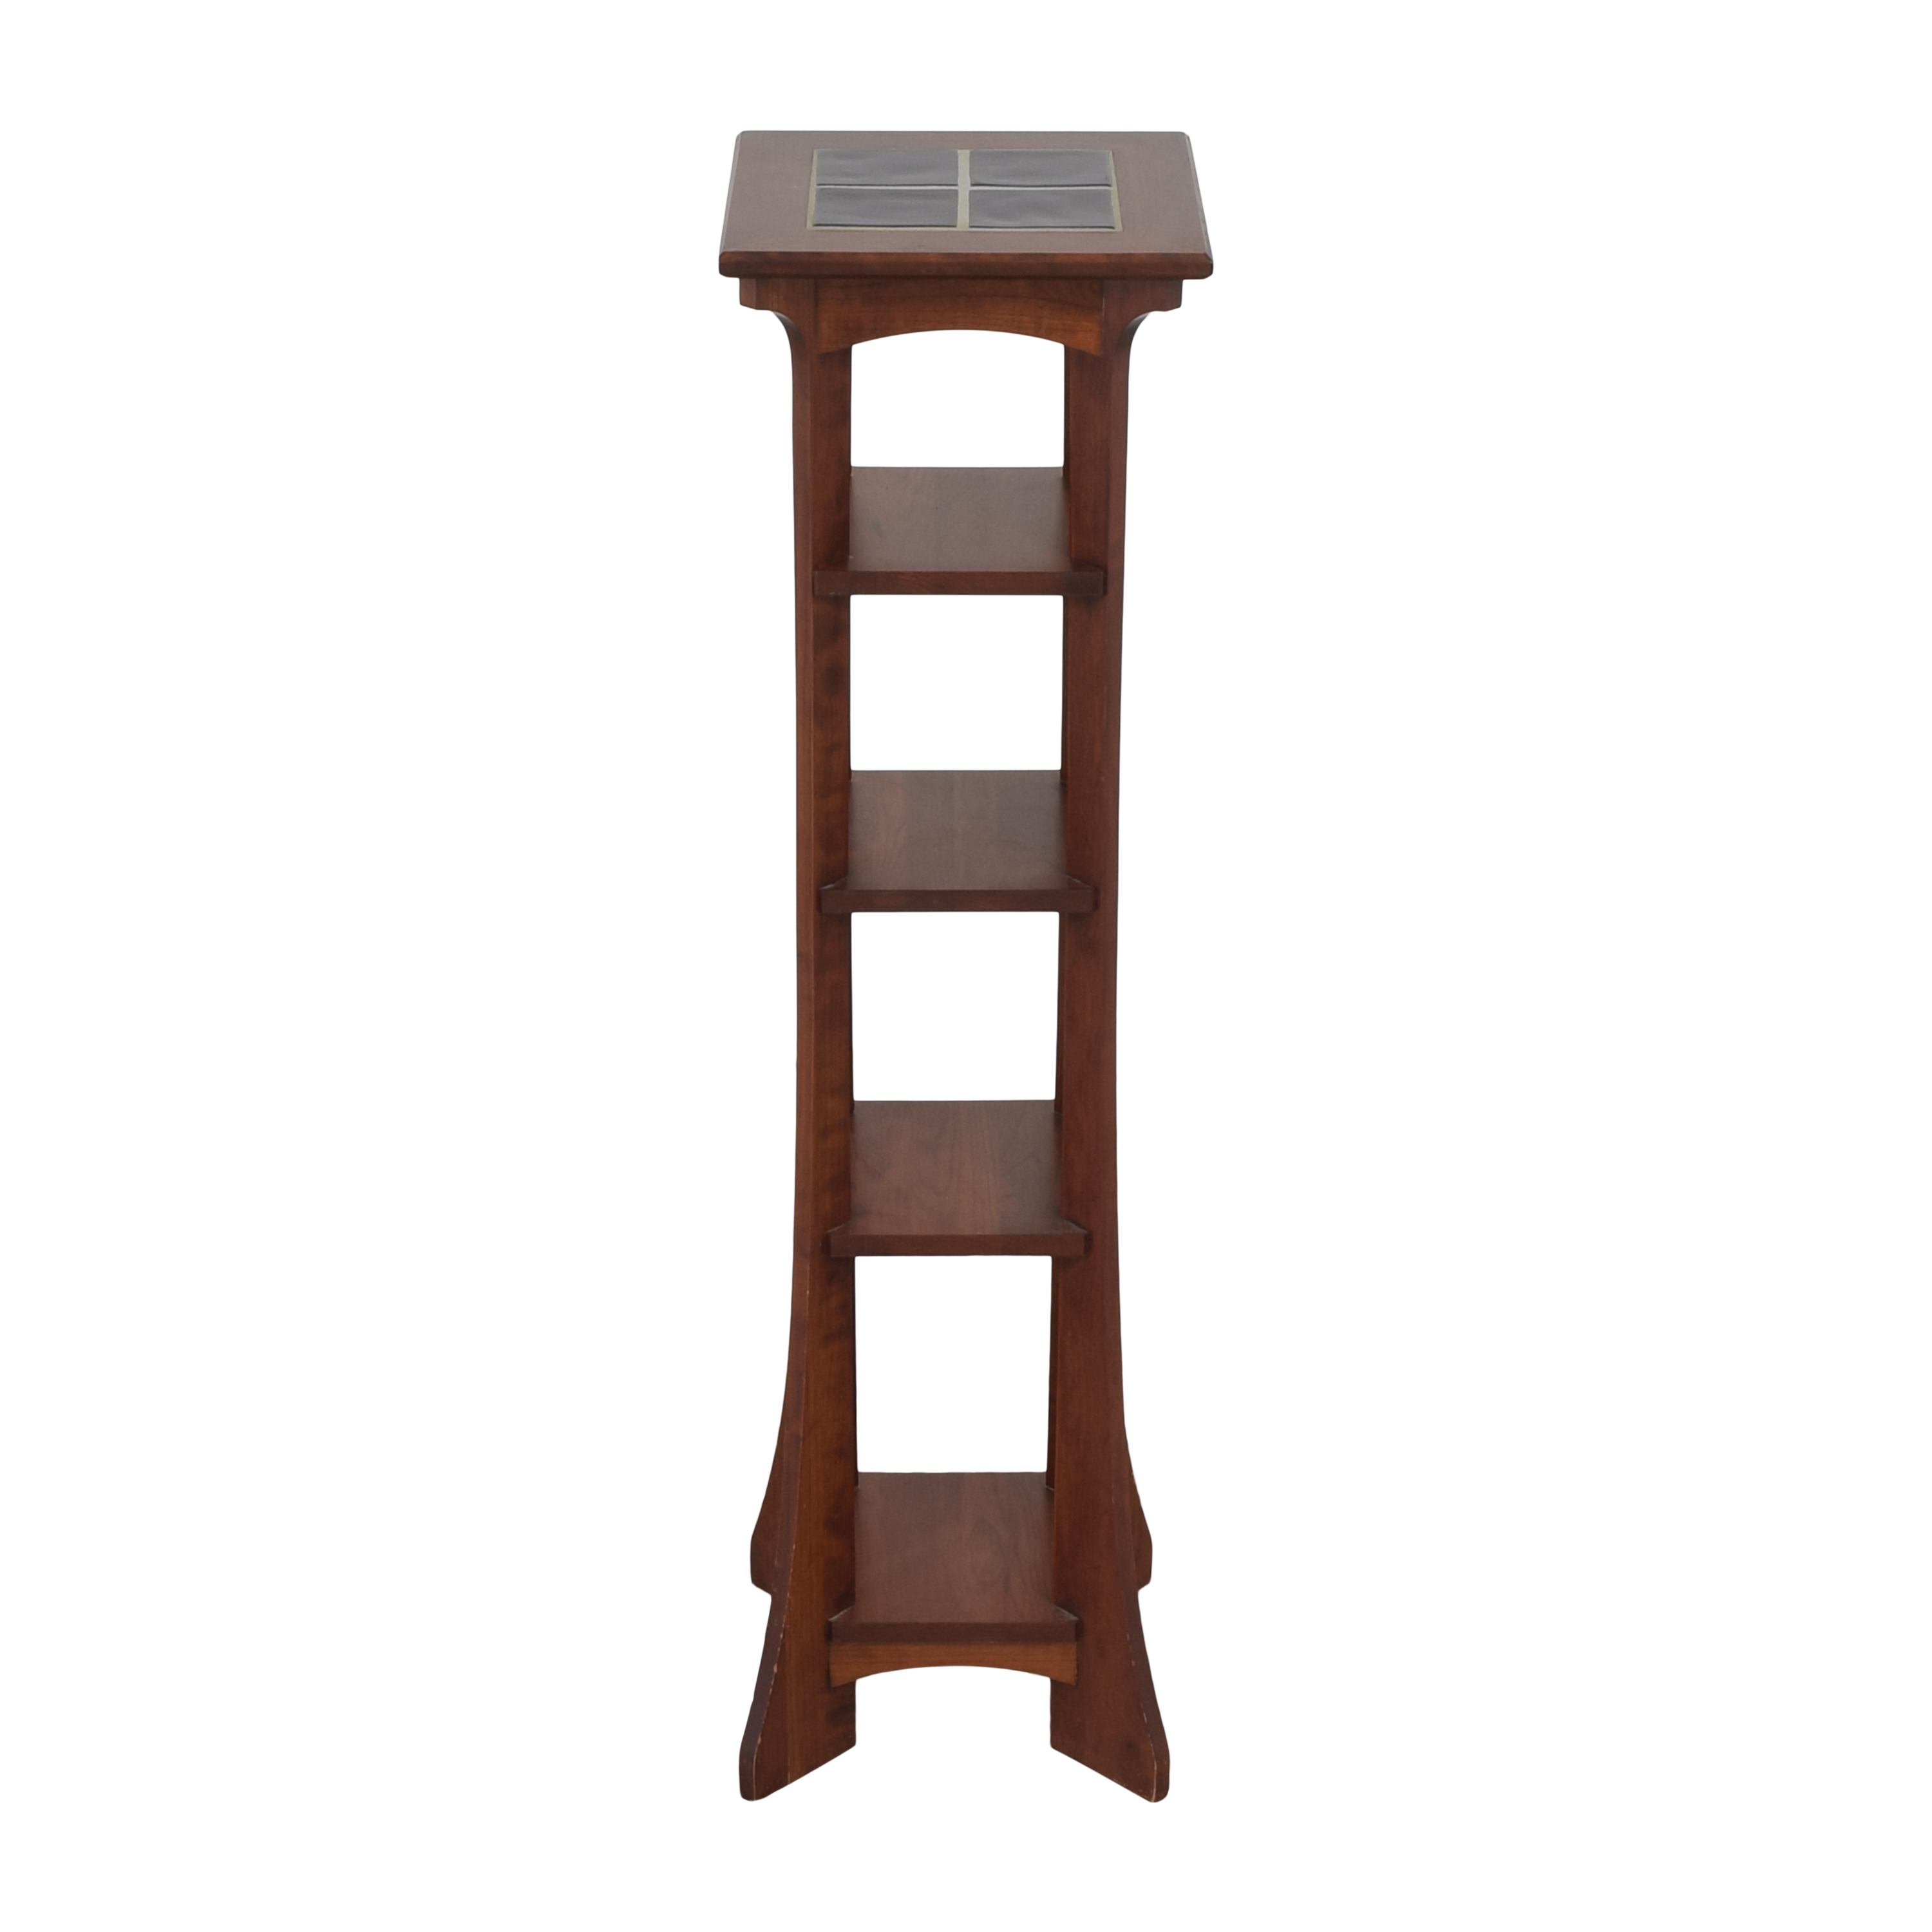 Ethan Allen Ethan Allen American Impressions Five Tier Plant Stand price